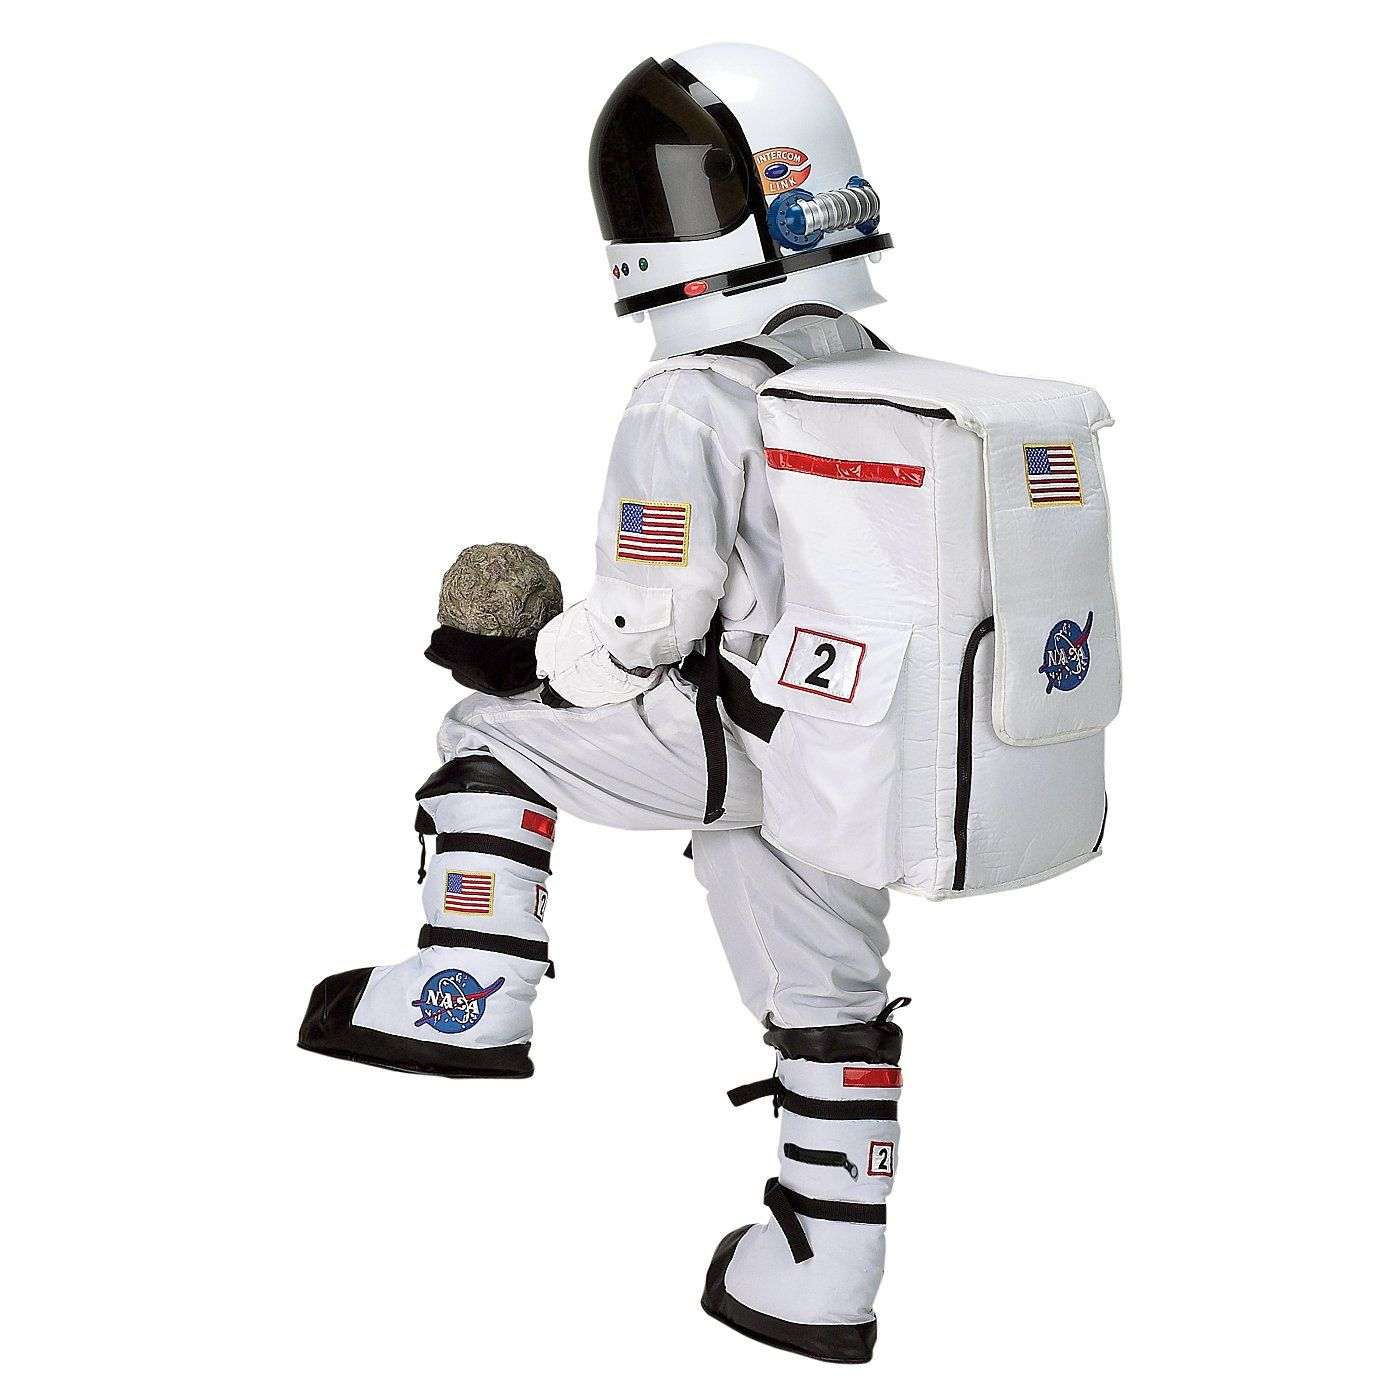 Adult astronaut outfit